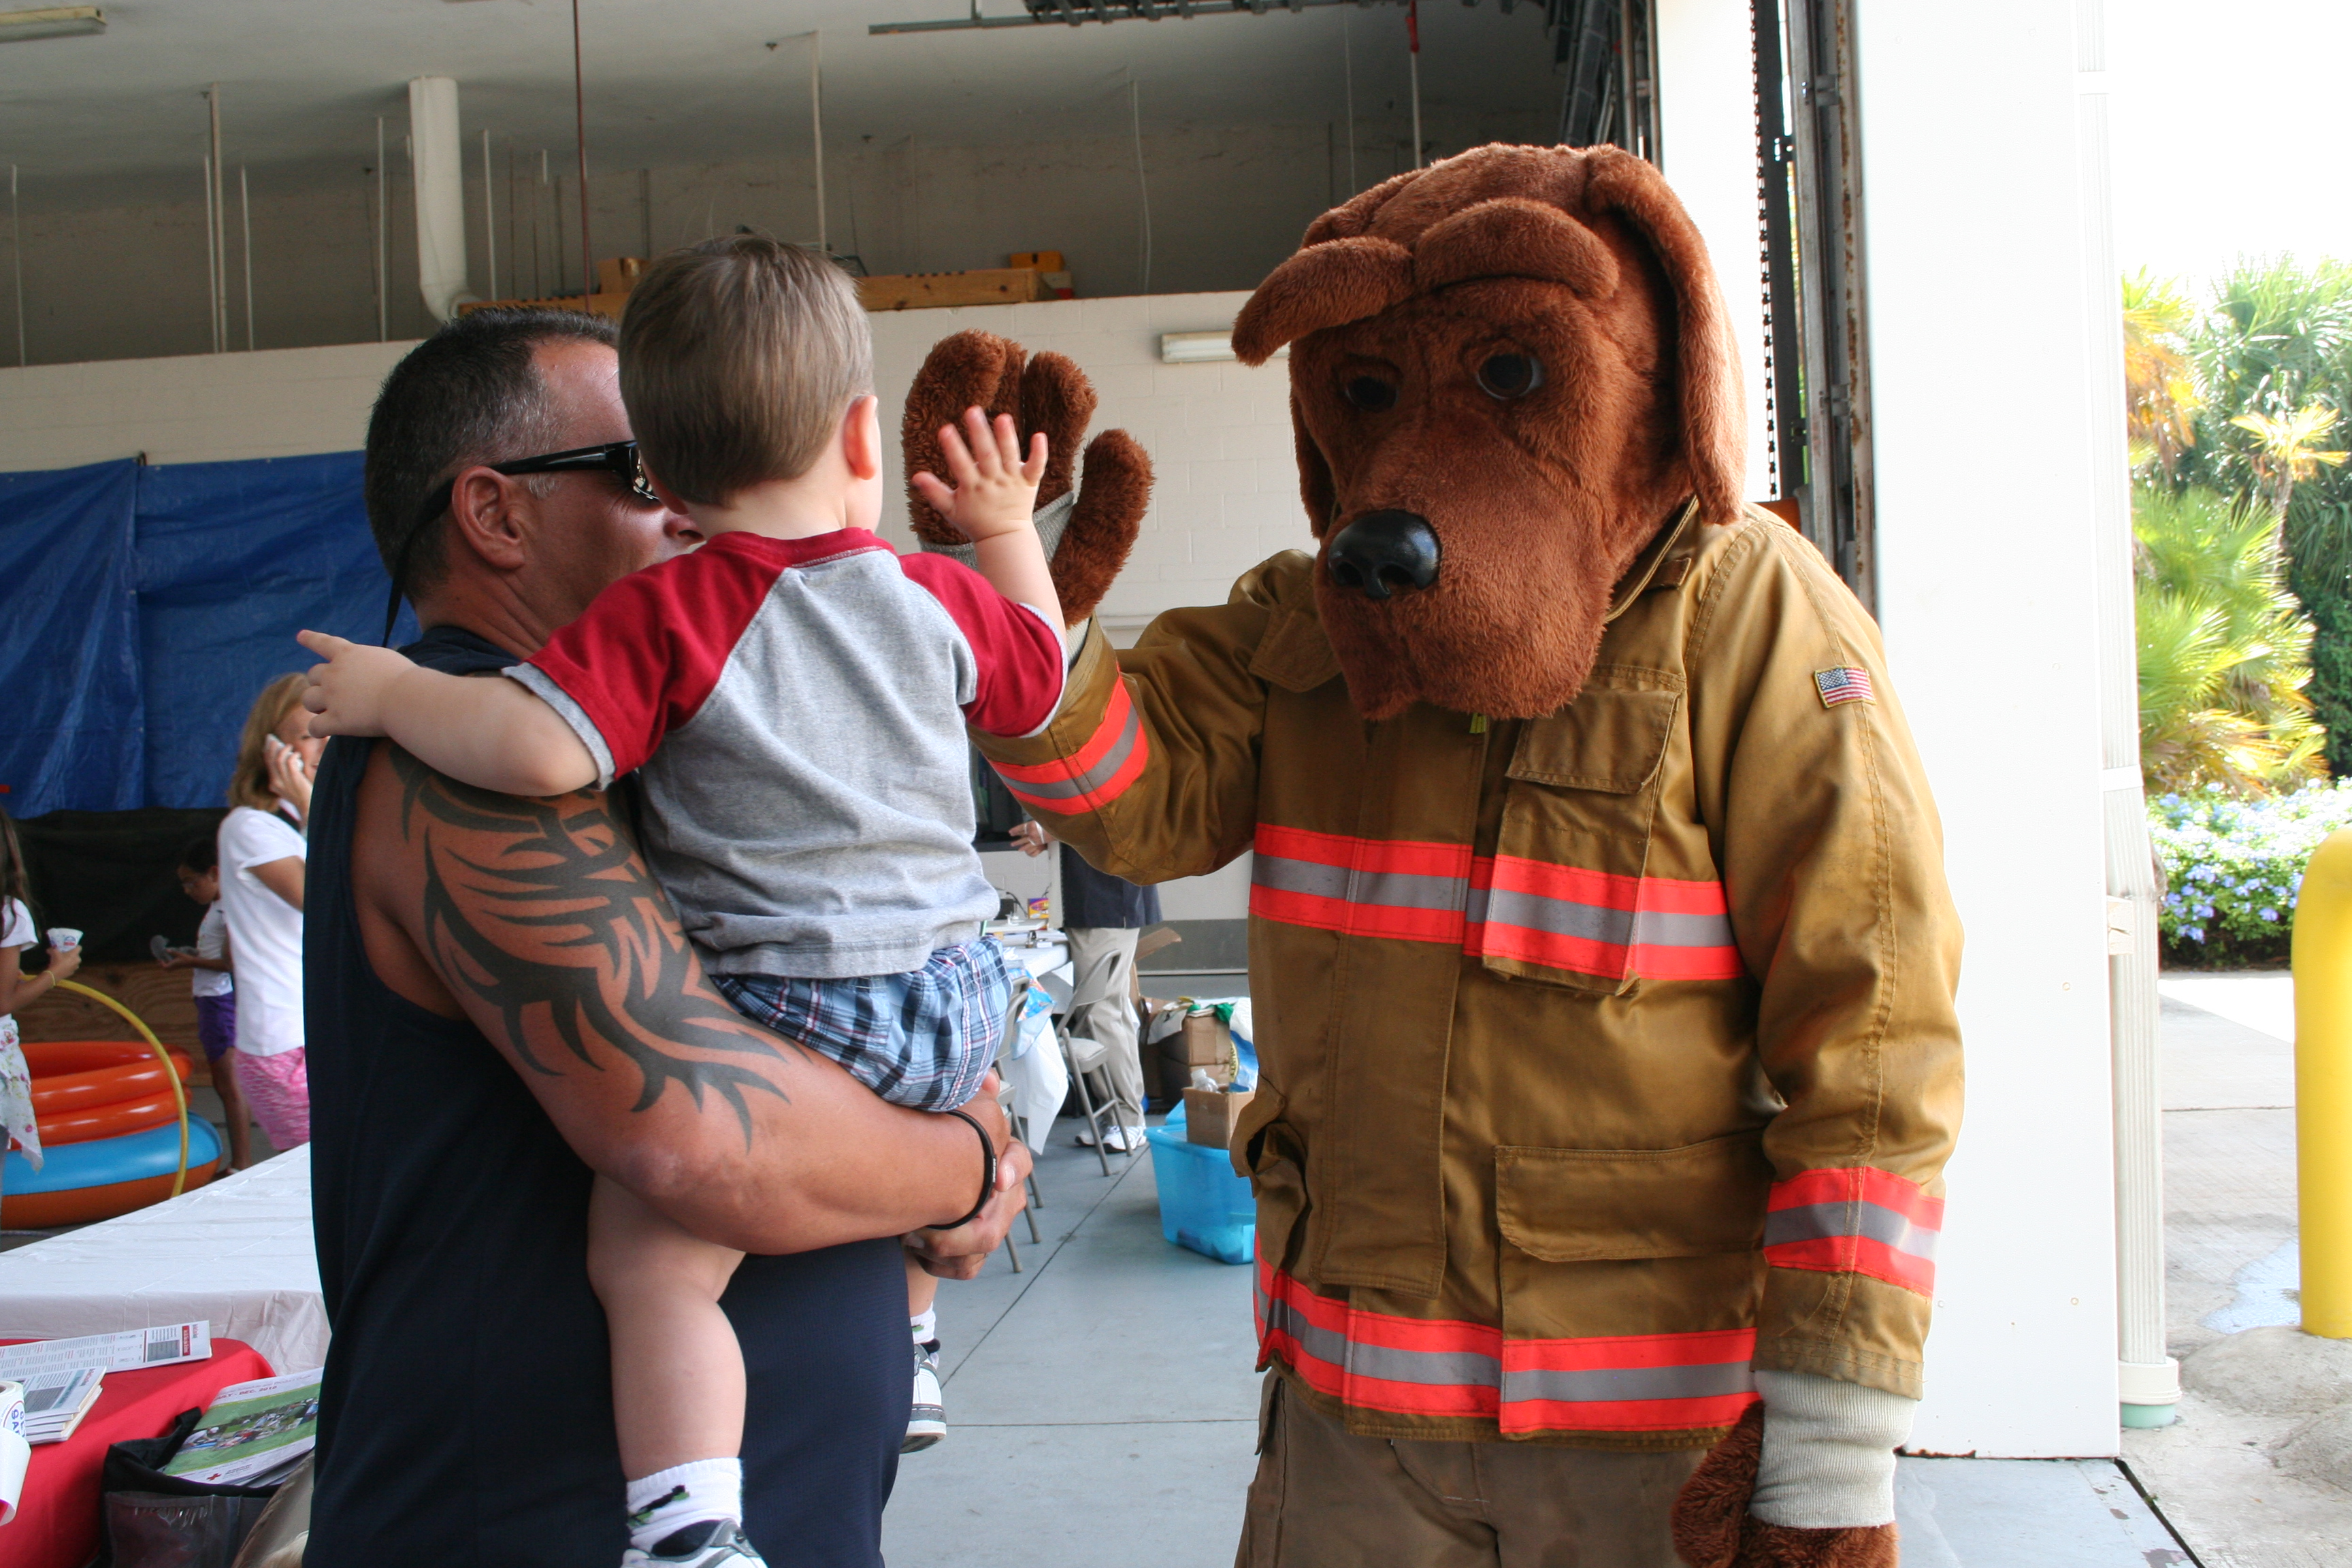 Fire Dog Mascot Greets Young Participant